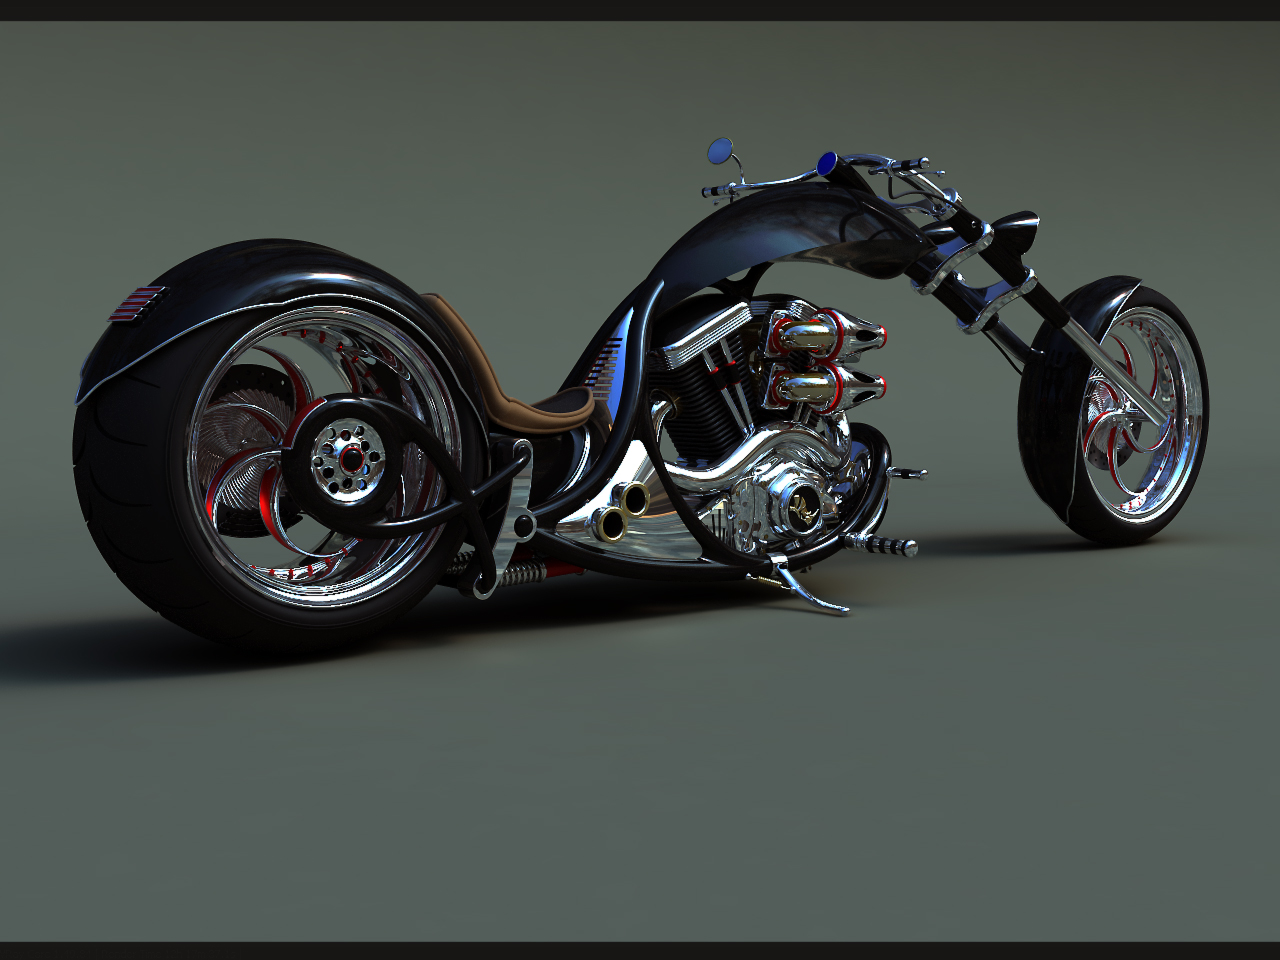 motorcycle wallpaper background 1280x960